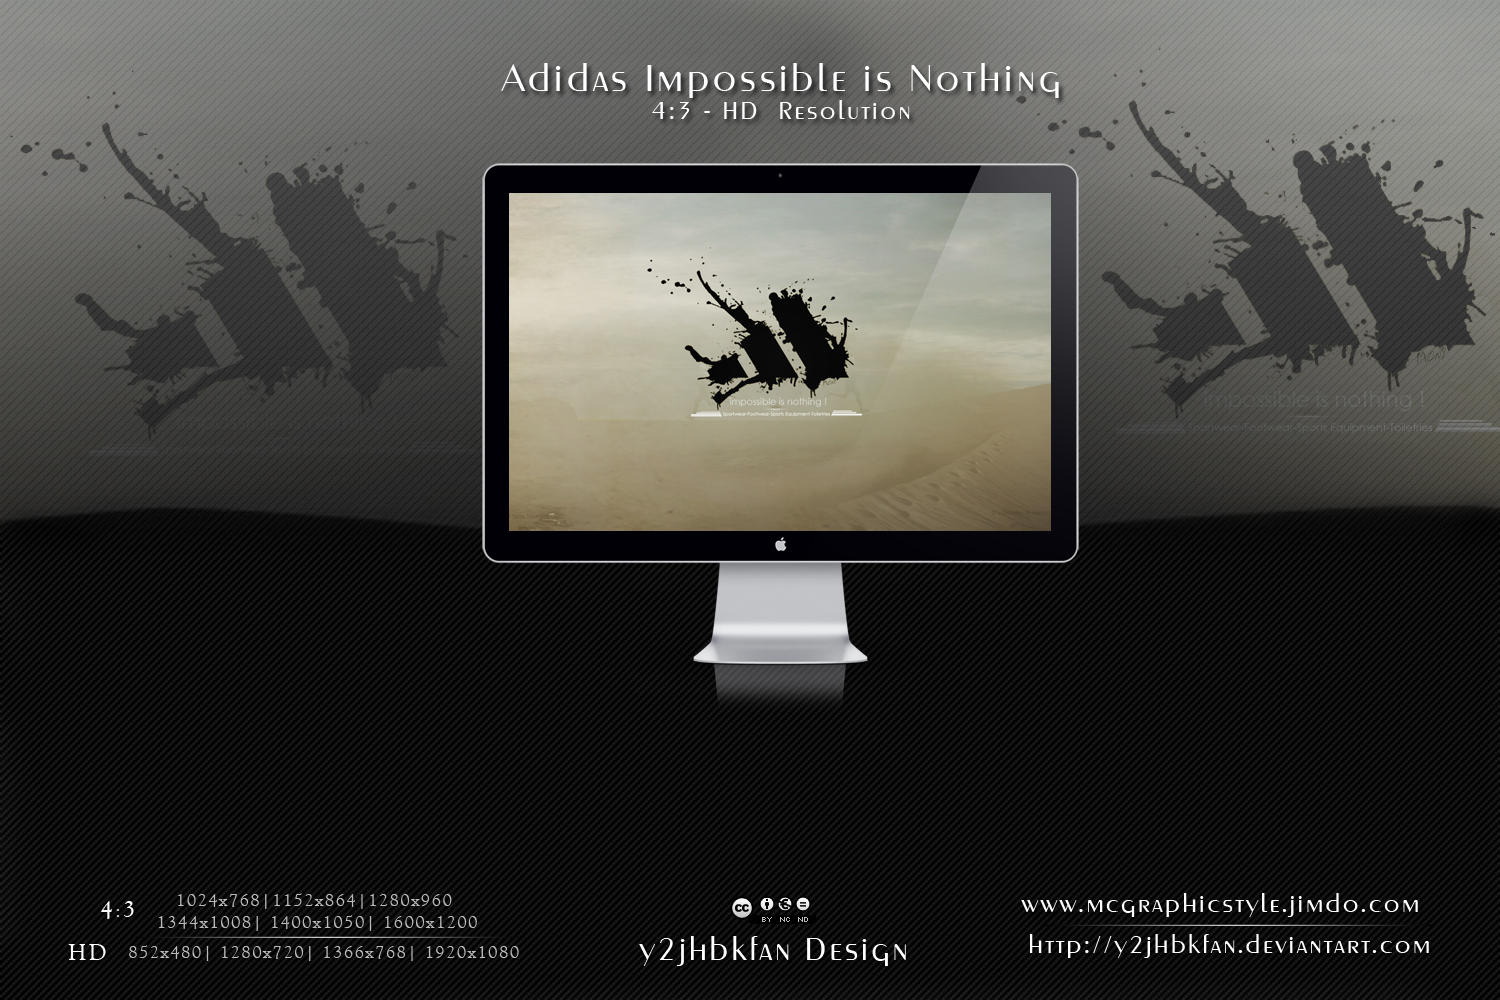 Adidas Impossible is nothing by y2jhbkfan